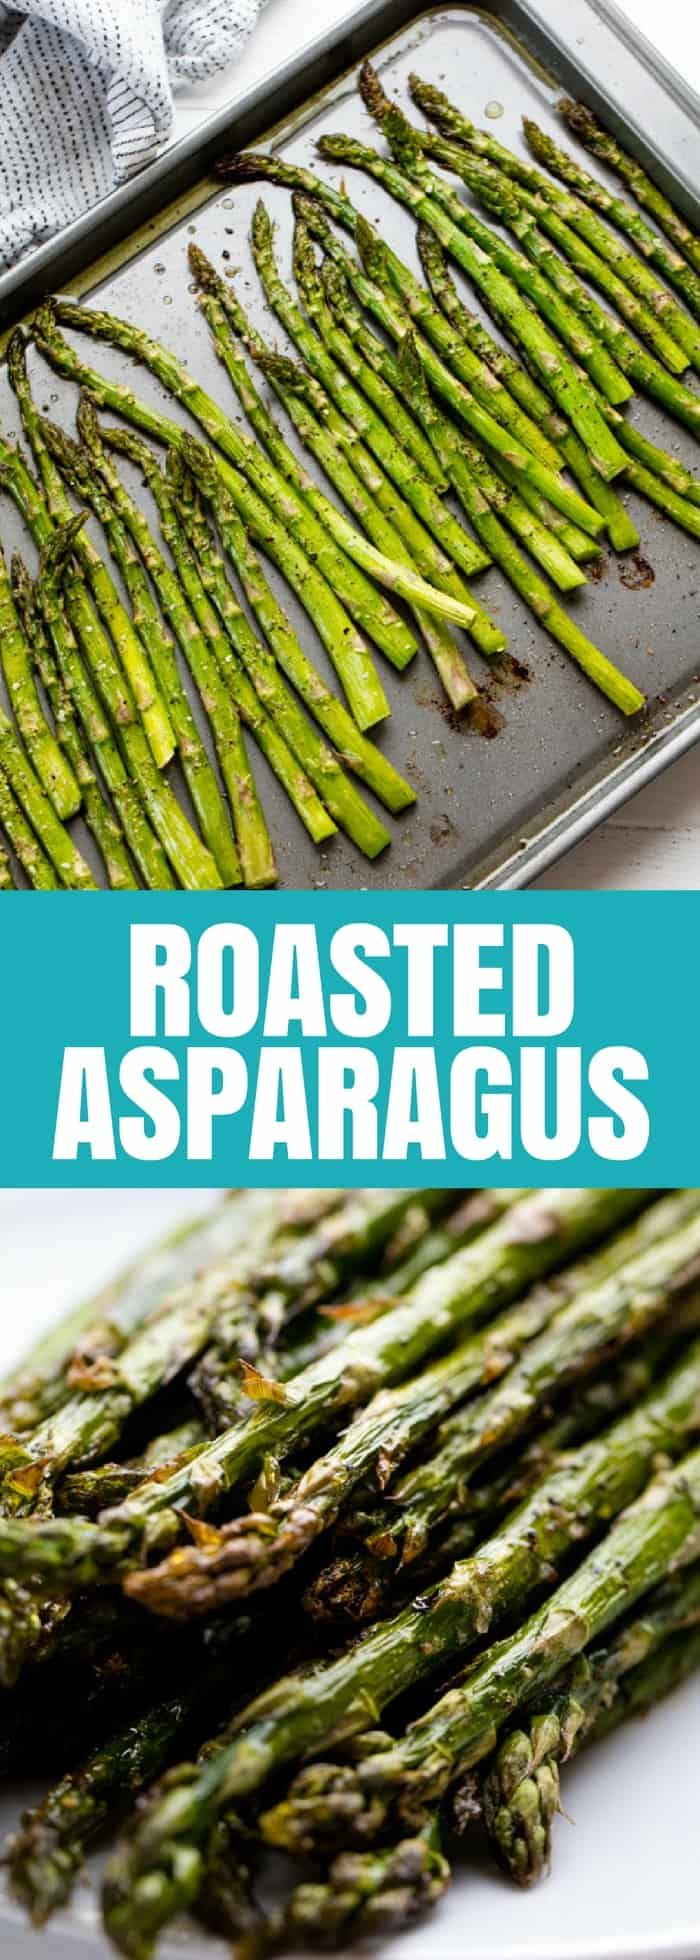 Roasted Asparagus is one of the simplest, most delicious ways to easily cook asparagus in the oven. It requires minimal effort and the result is amazing!  #asparagus #sidedish